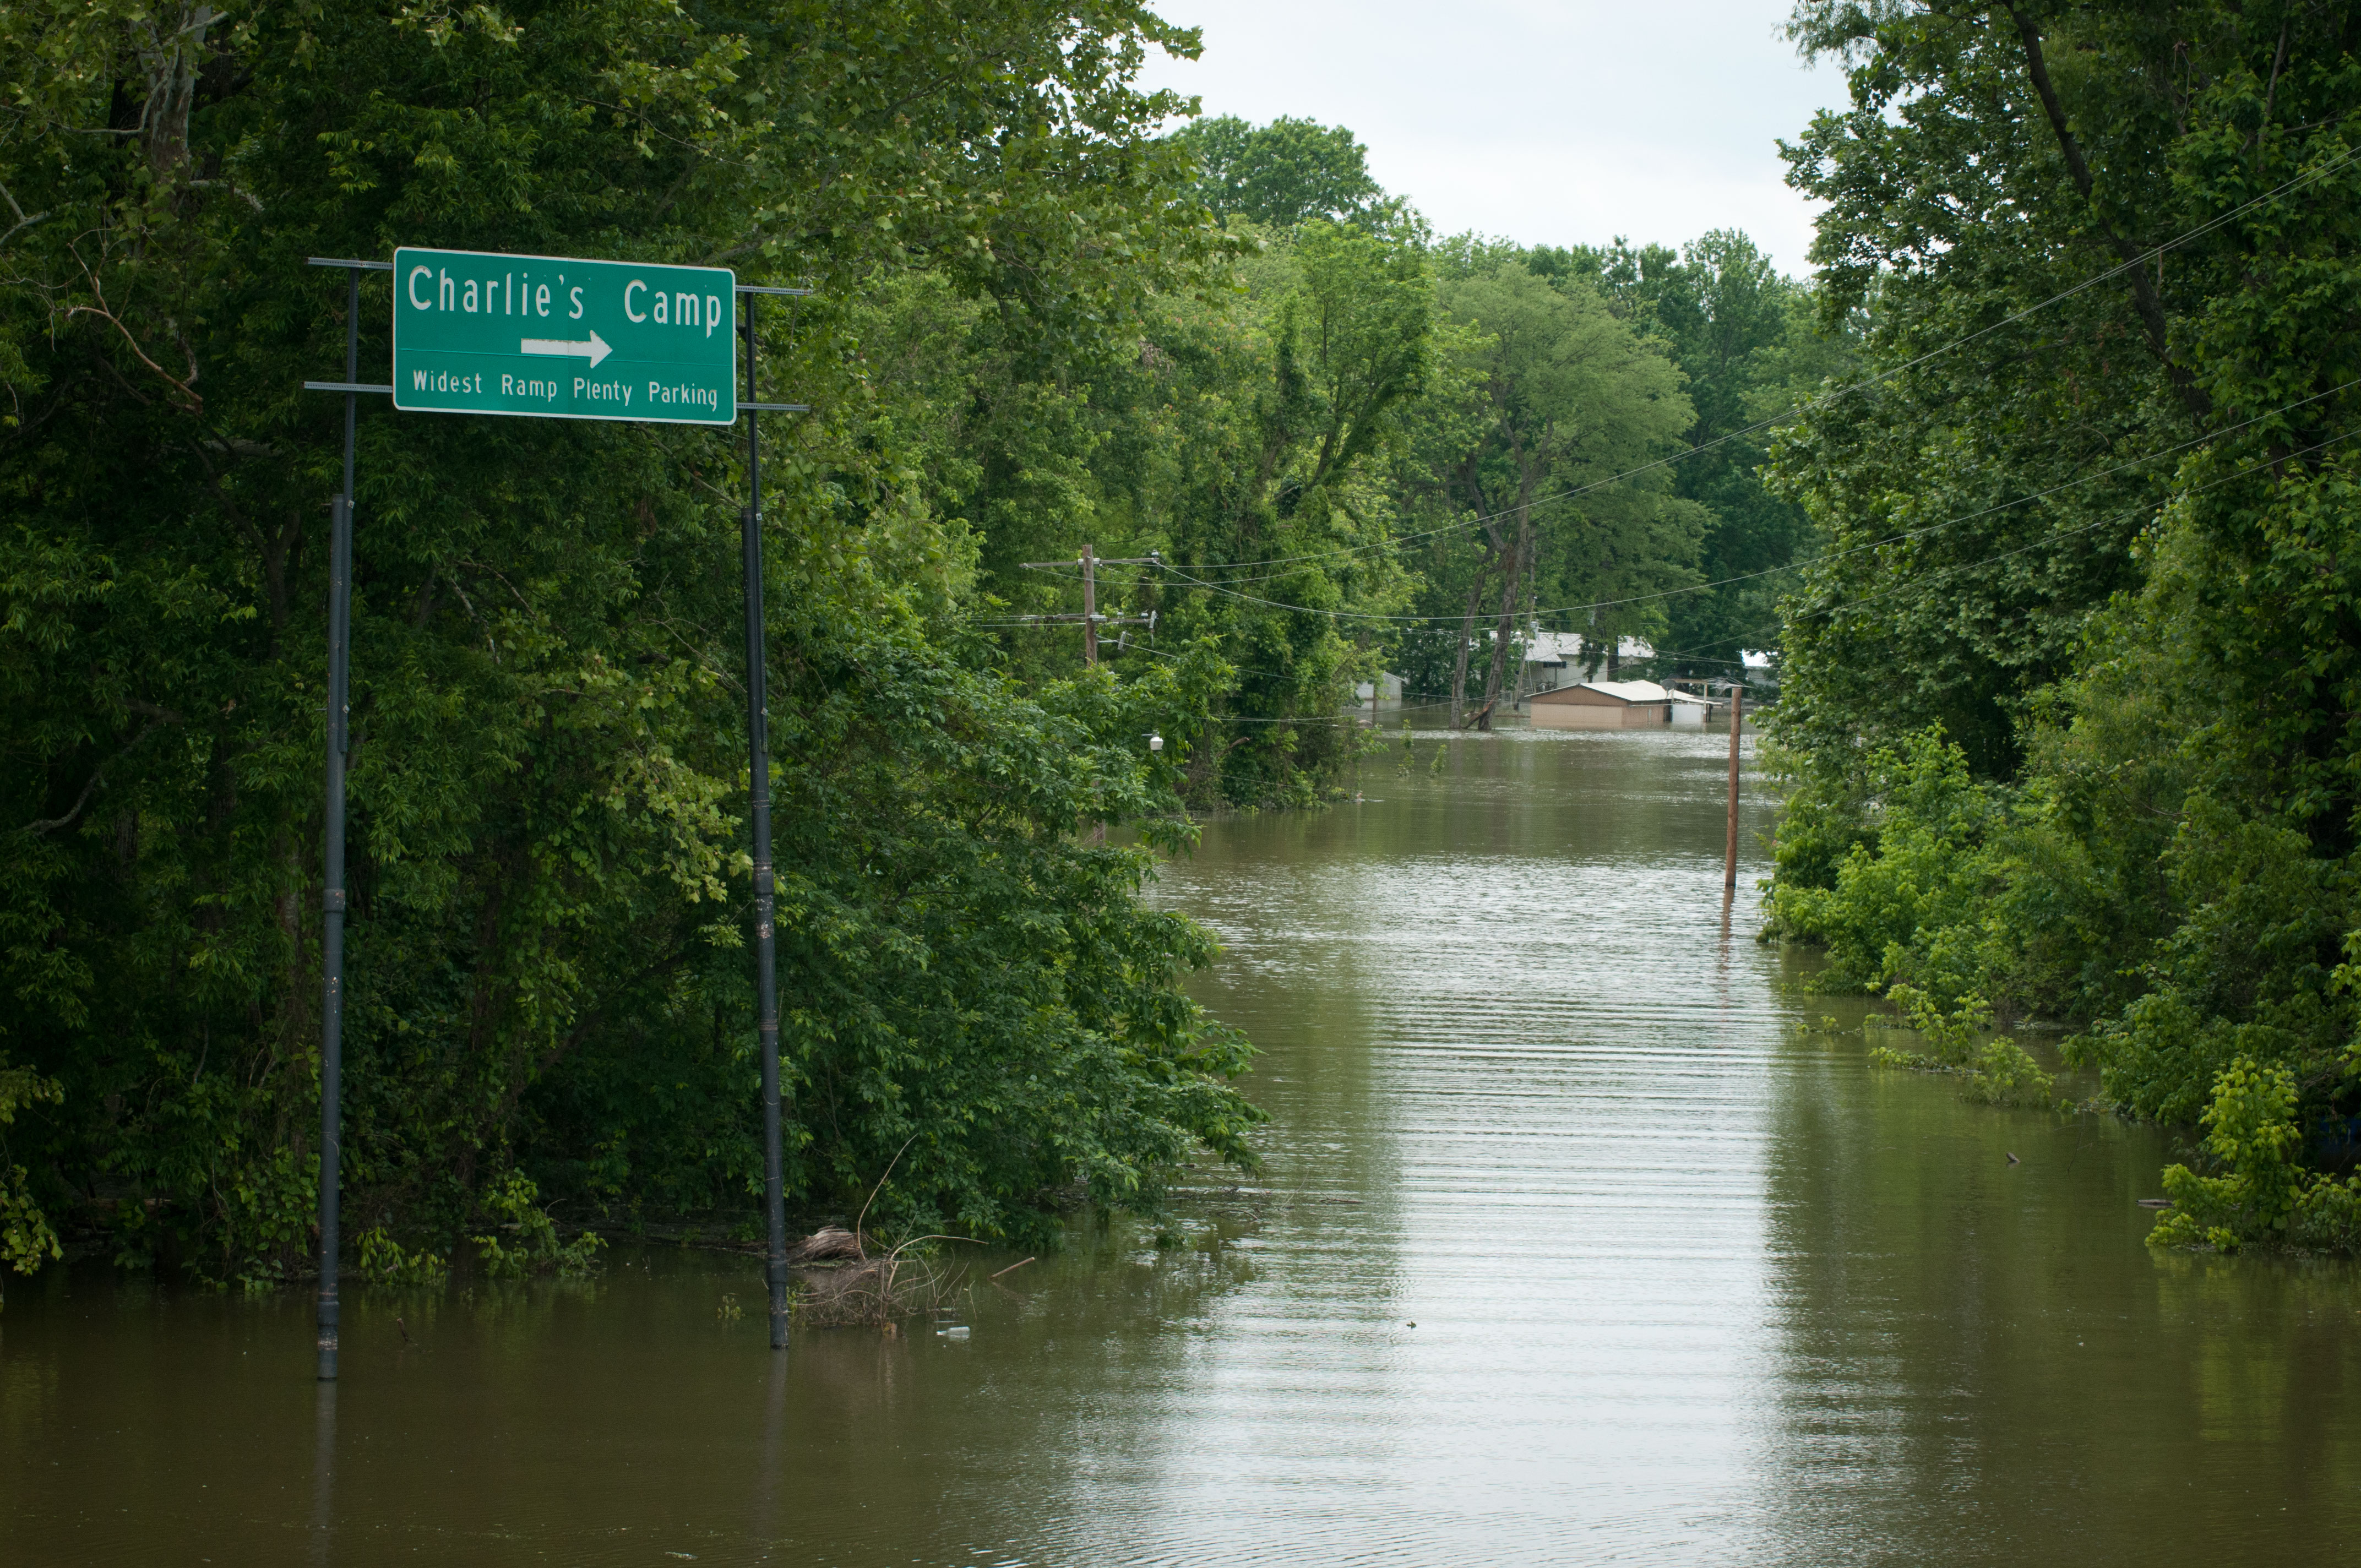 Mississippi tunica county dundee - Usa River Flood Ms Usda Departmentofagriculture Tunicams